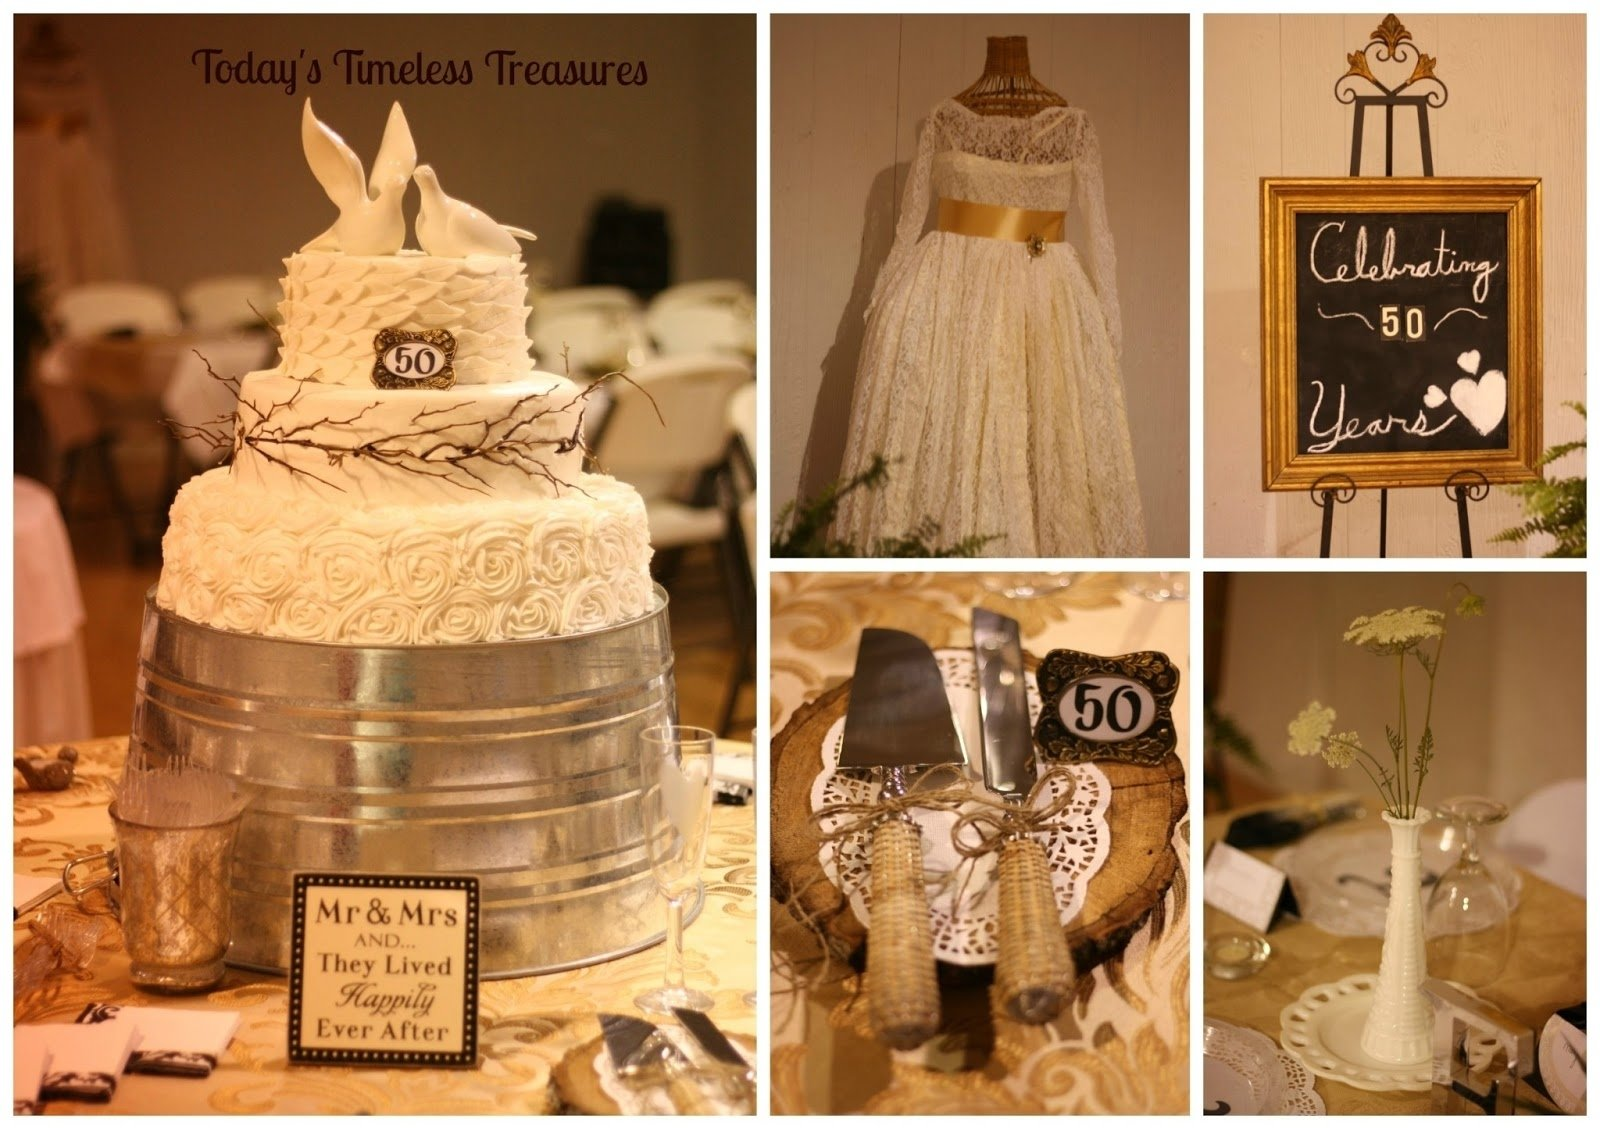 10 Awesome Anniversary Ideas On A Budget 50th wedding anniversary party ideas on a budget 50th wedding 2020